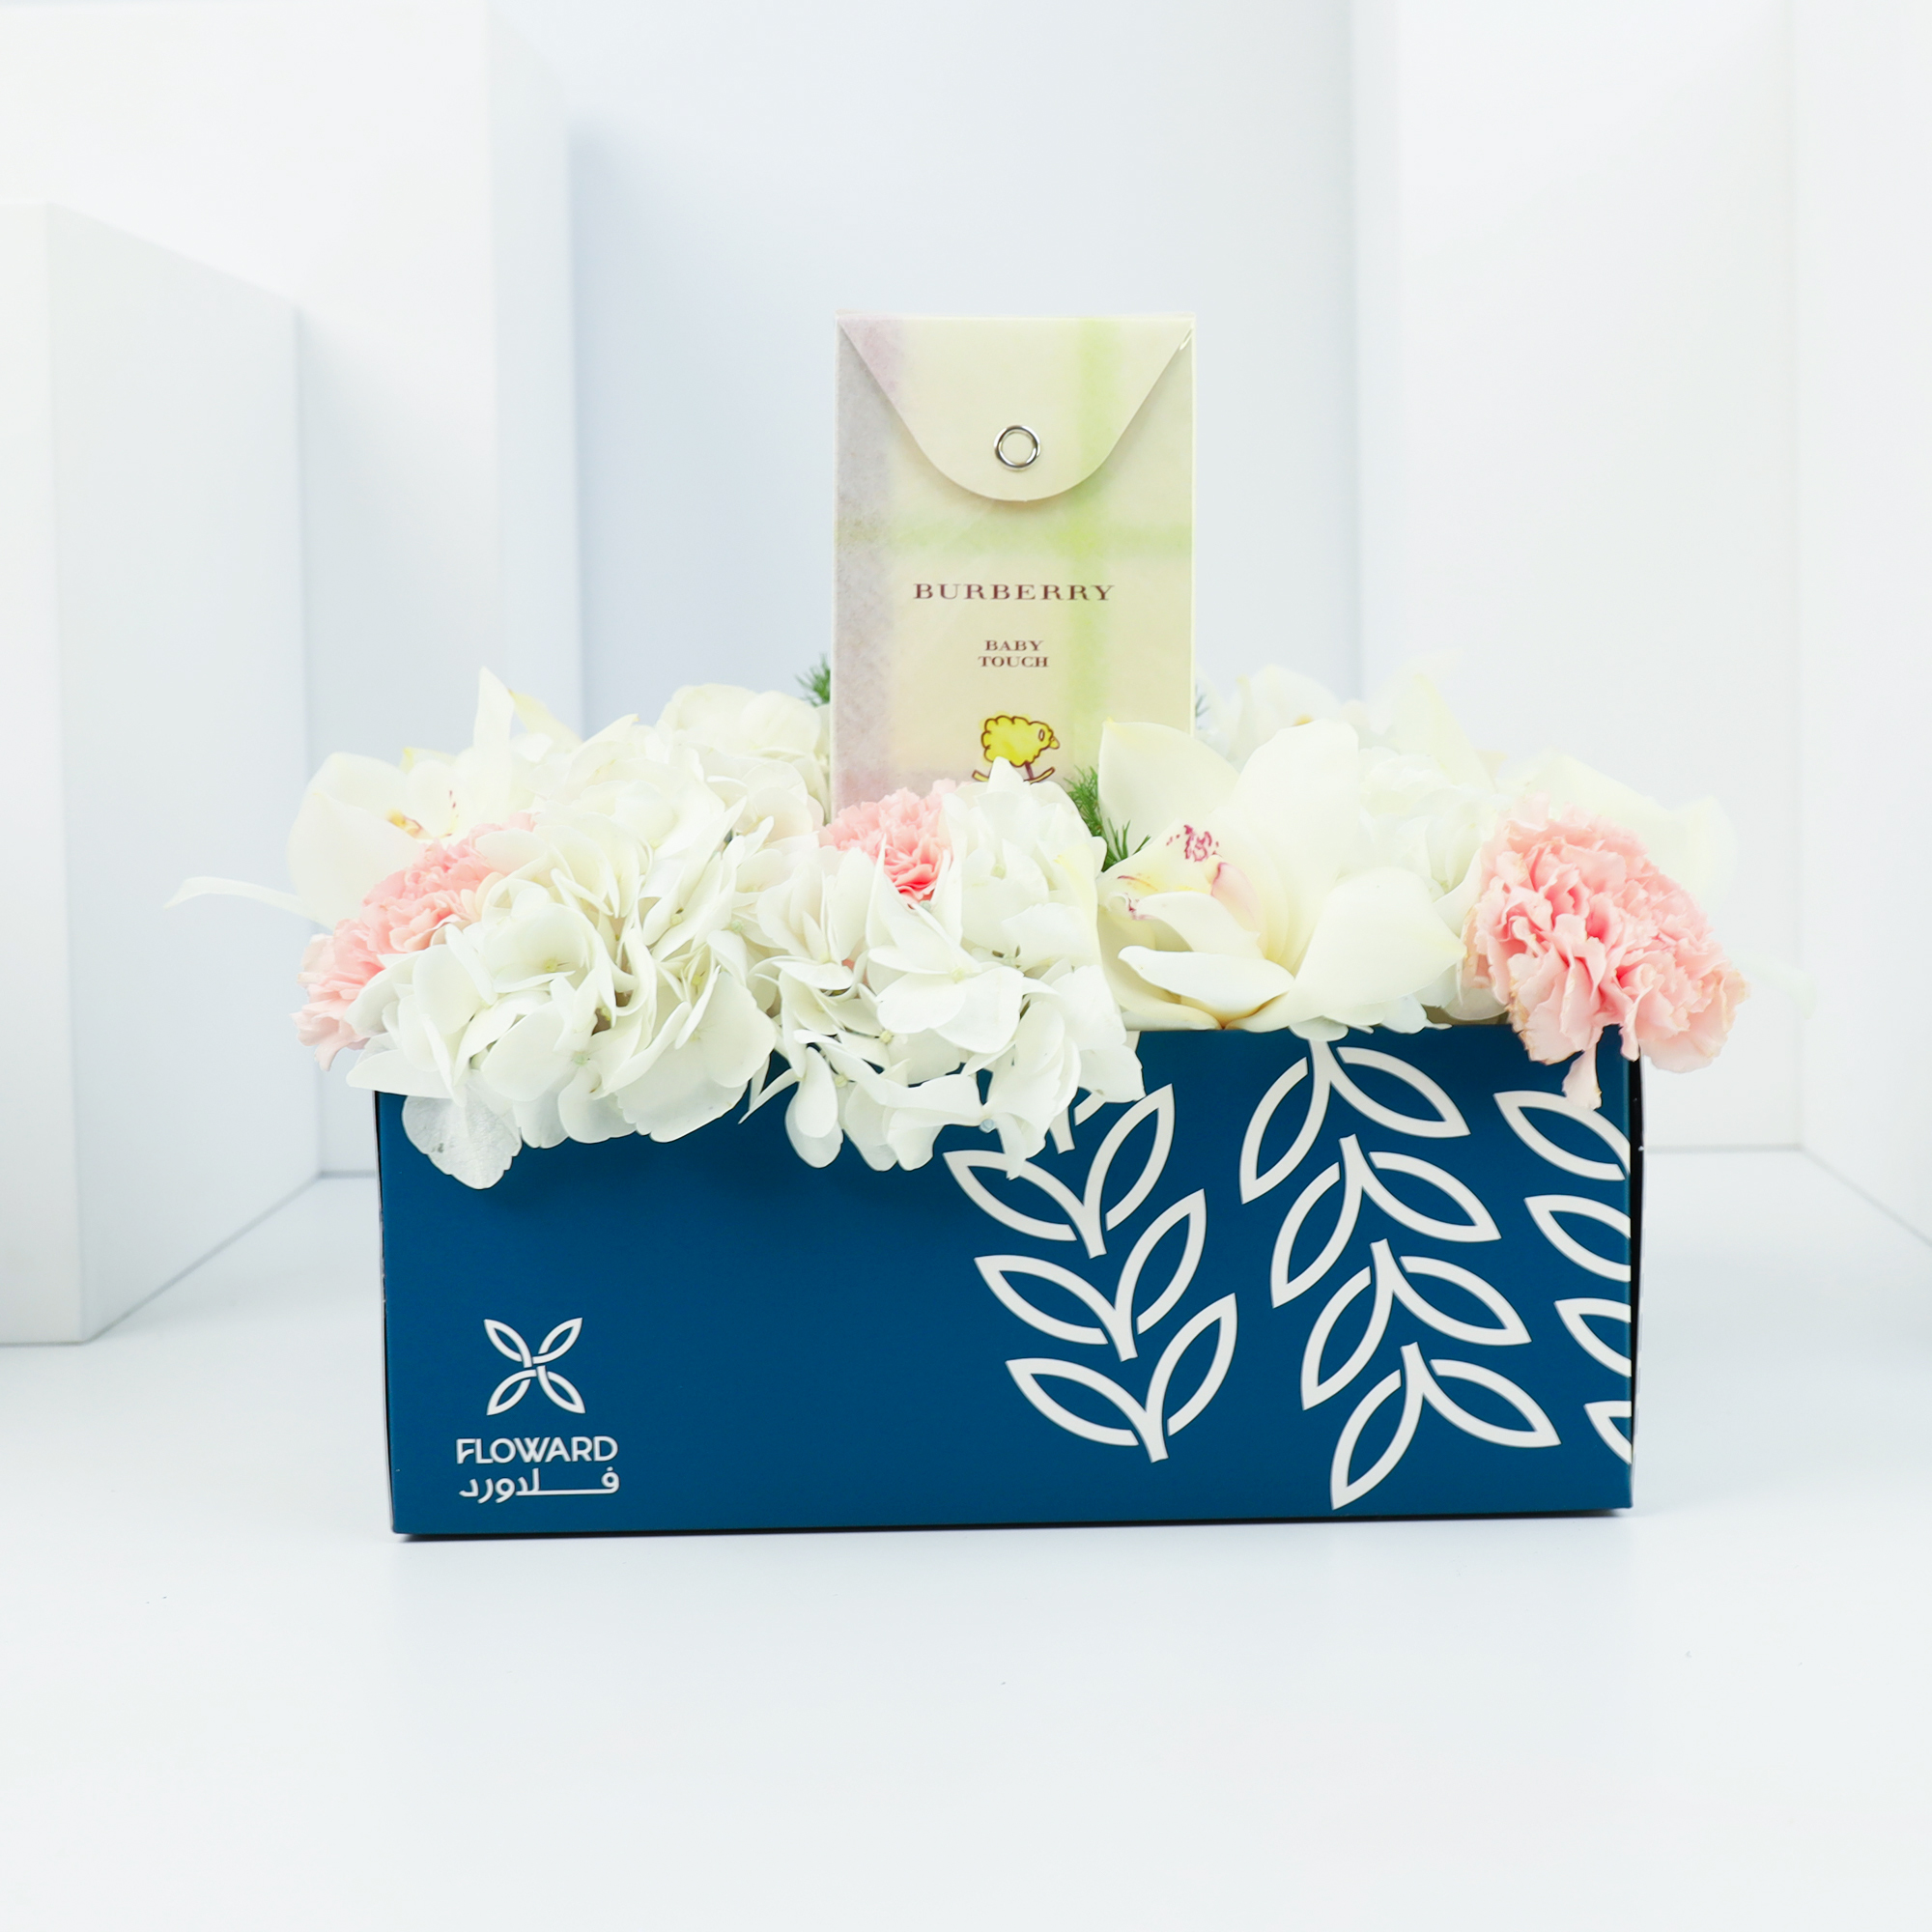 BurBerry Baby scent box